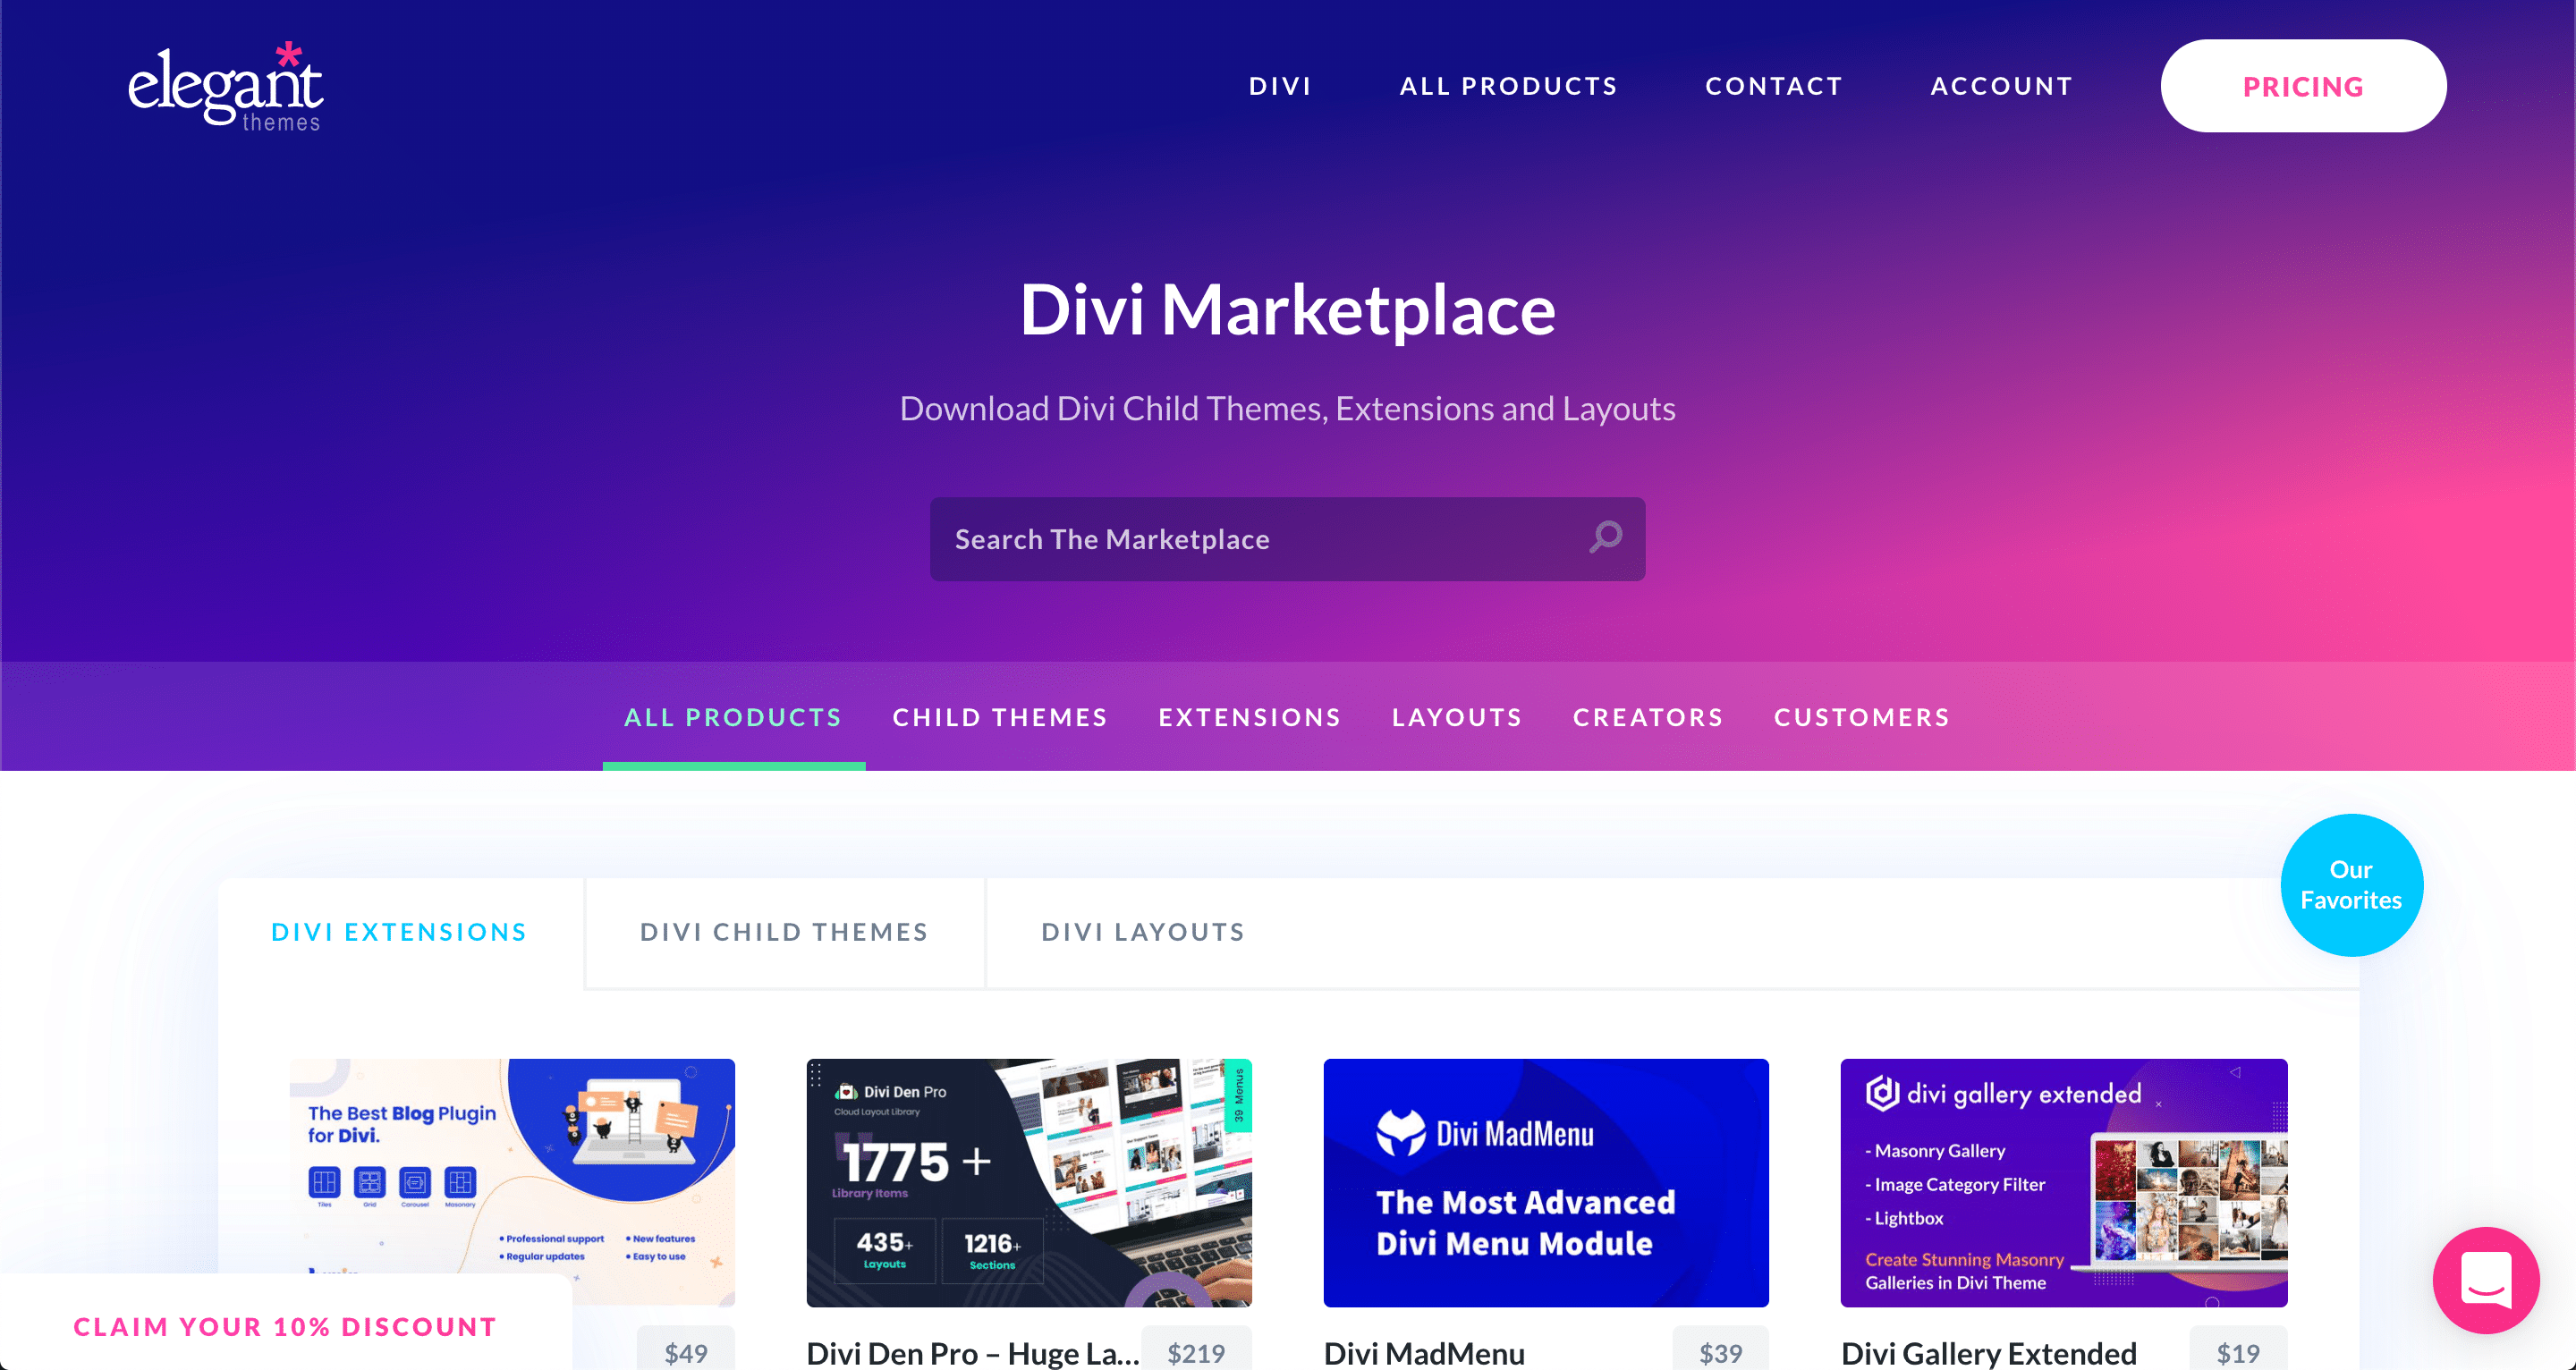 La Divi MarketPlace